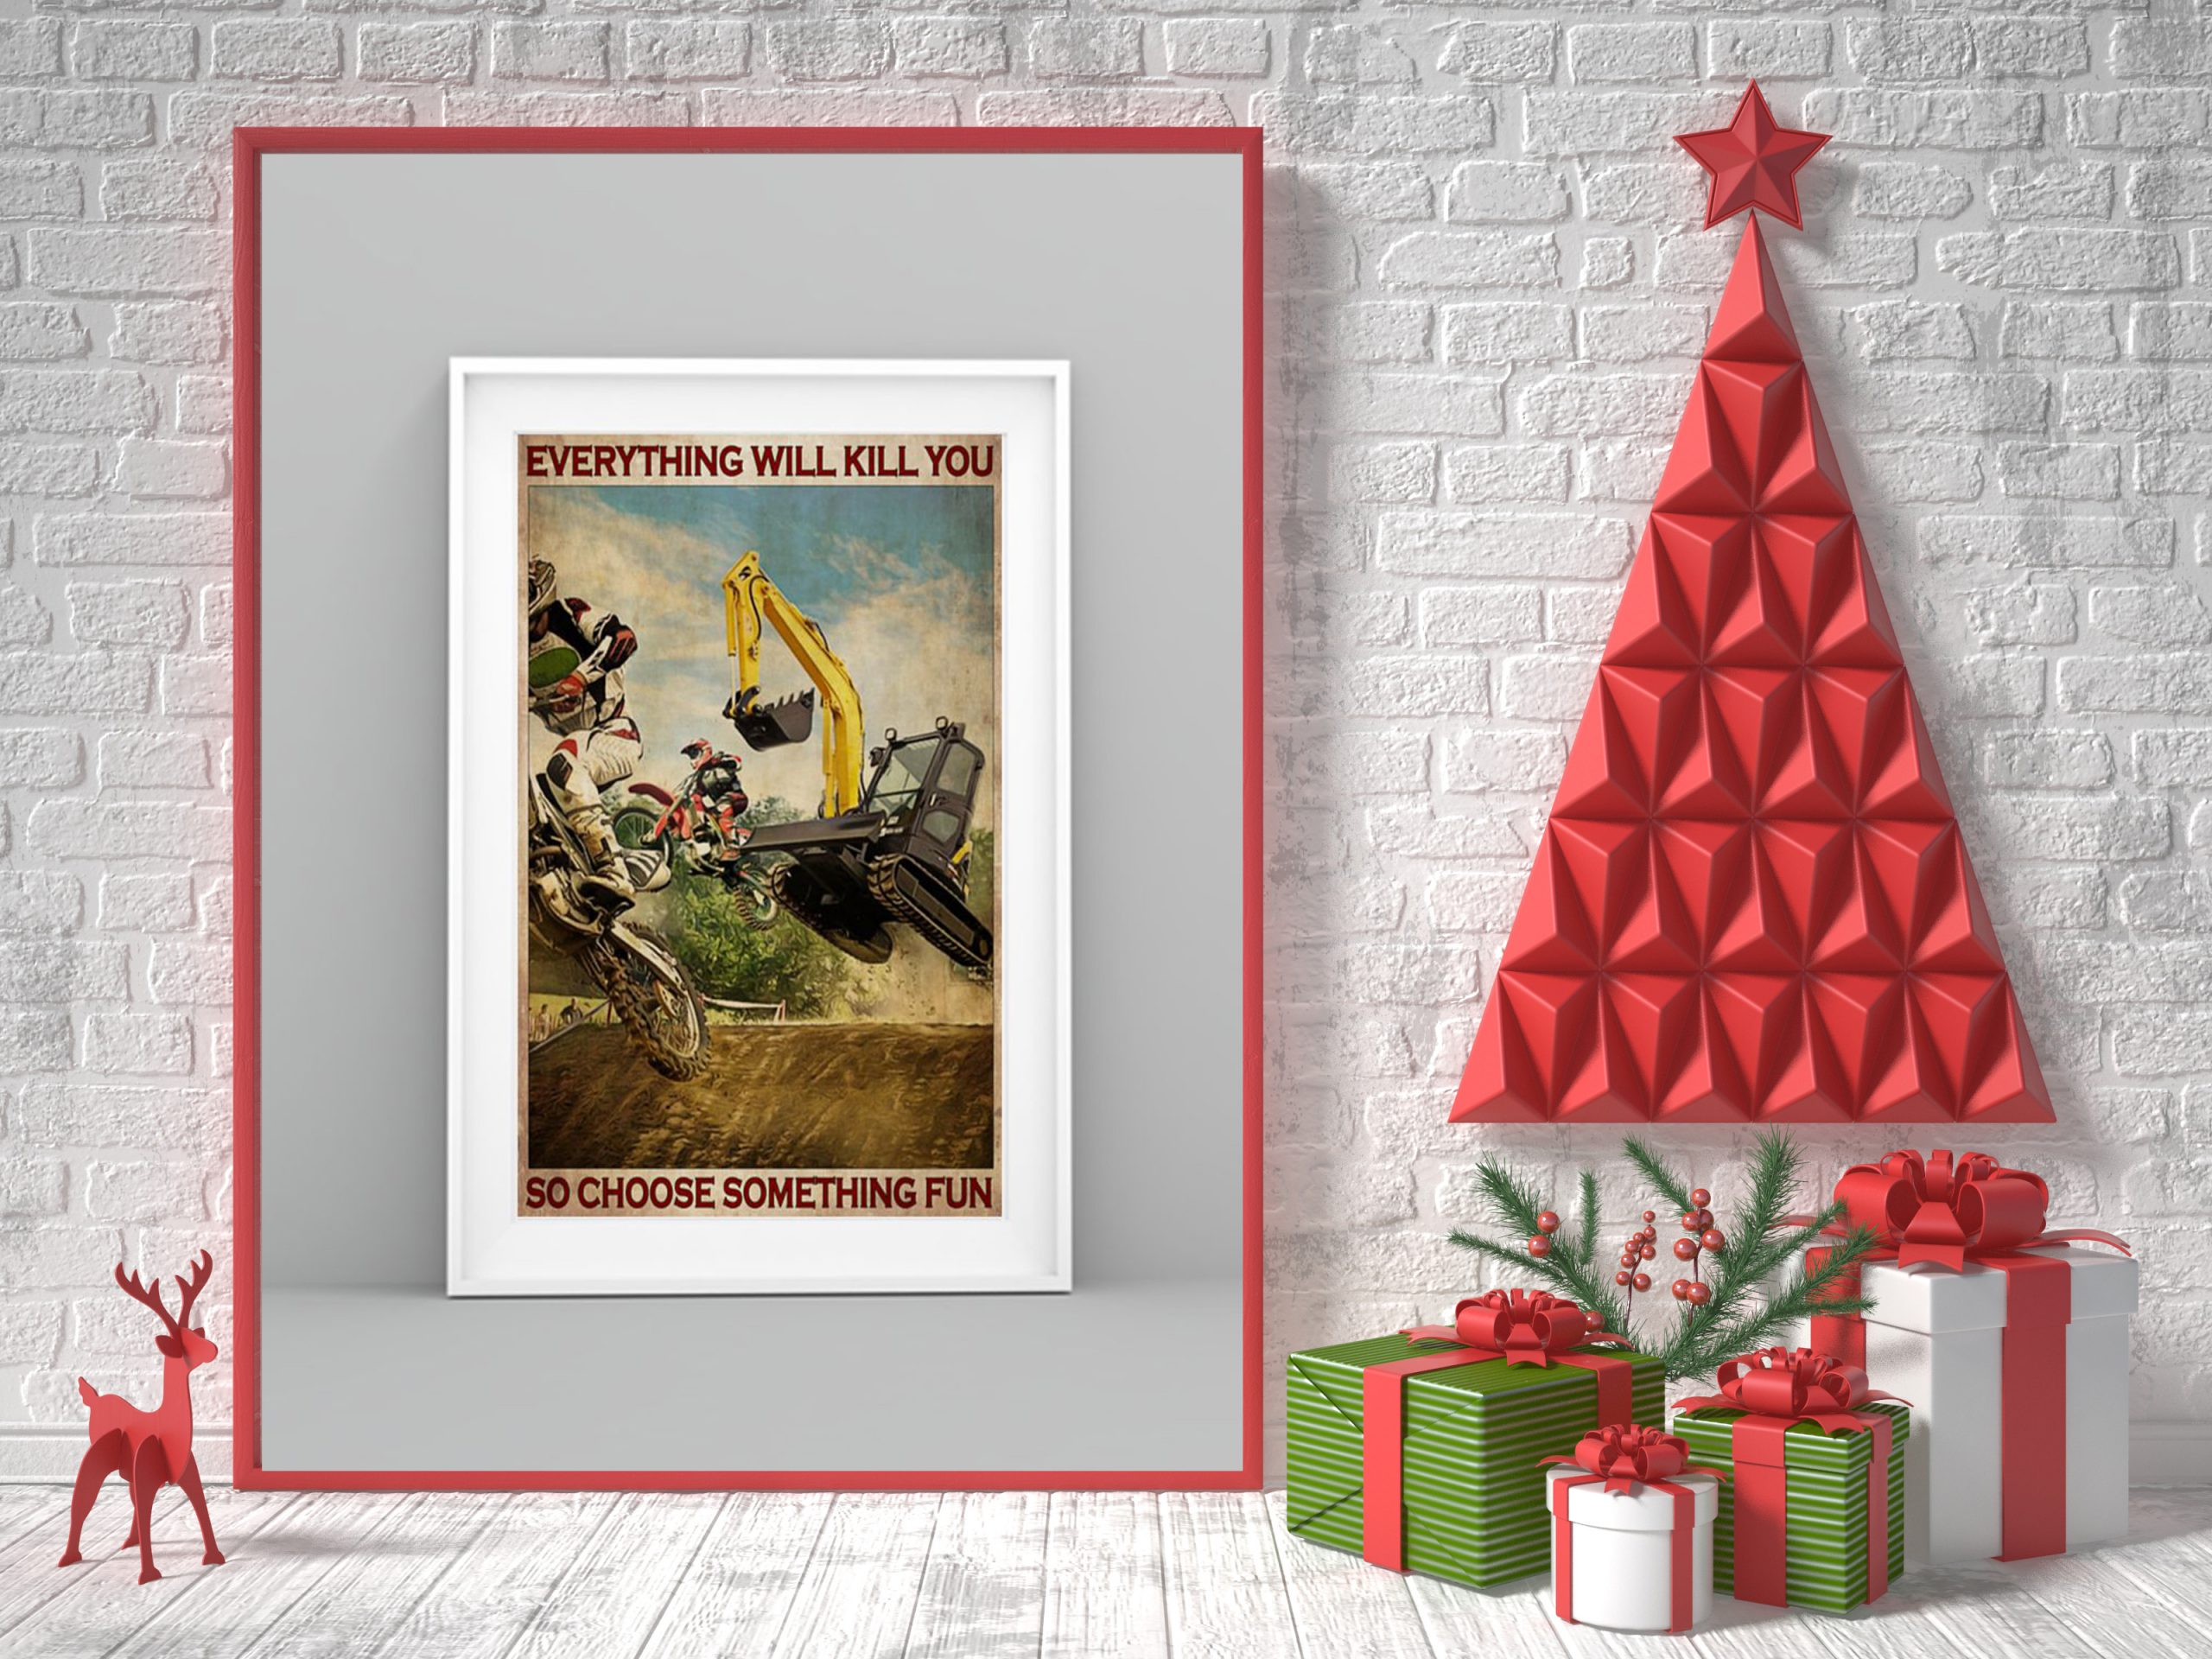 Excavator and Motocross everything will kill you so choose something fun poster 2